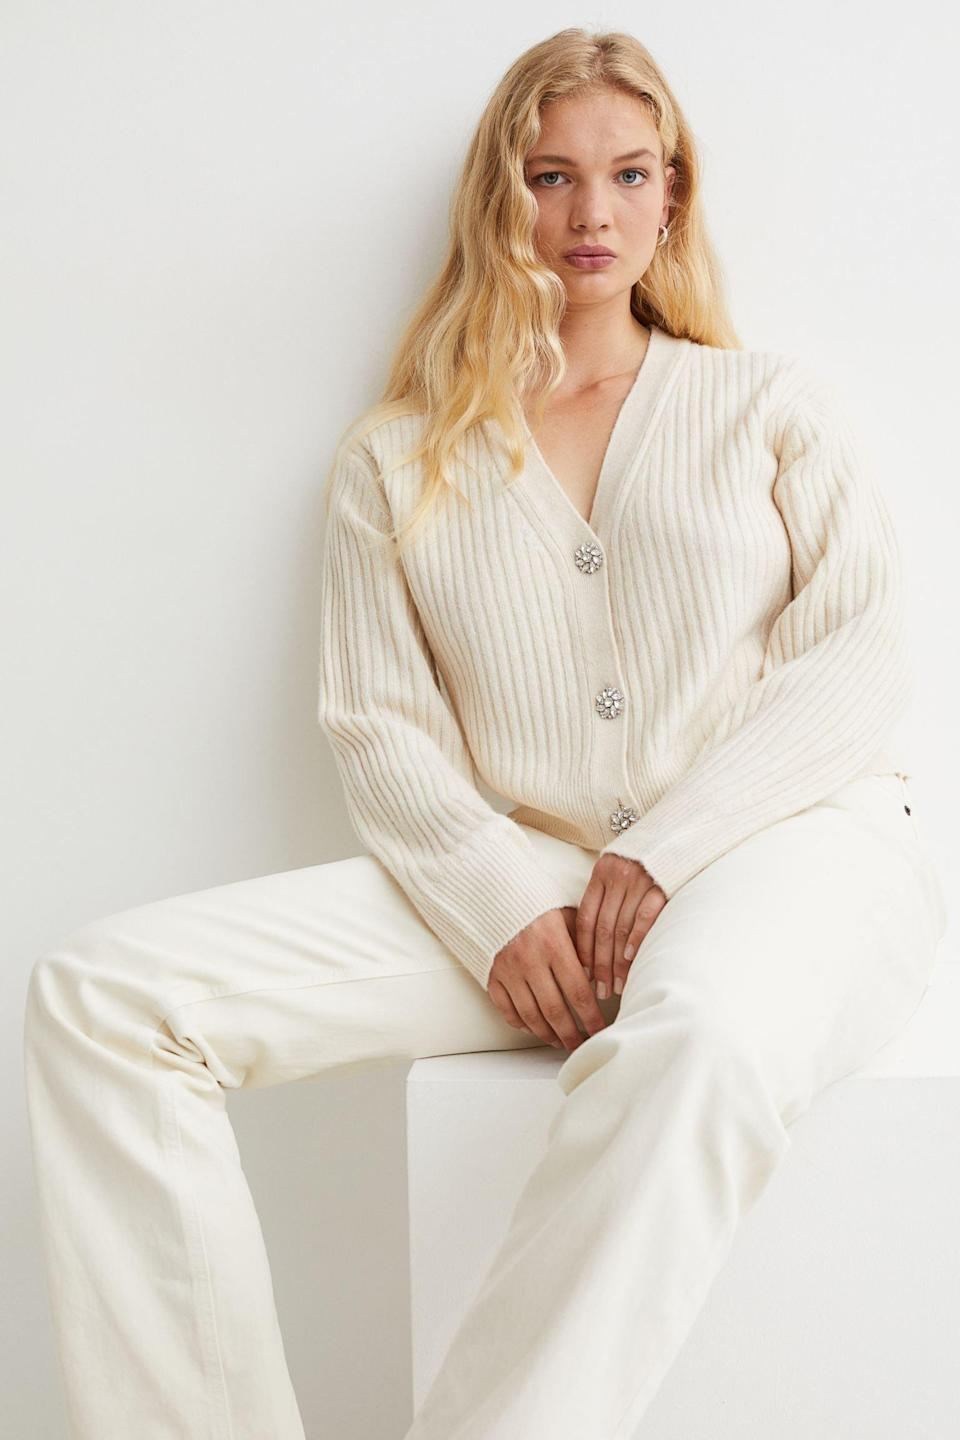 <p>The embellished buttons of this <span>Rib-Knit Cardigan</span> ($16, originally $20) make it a step above the rest. Pair it with white jeans for a crisp monochrome look.</p>